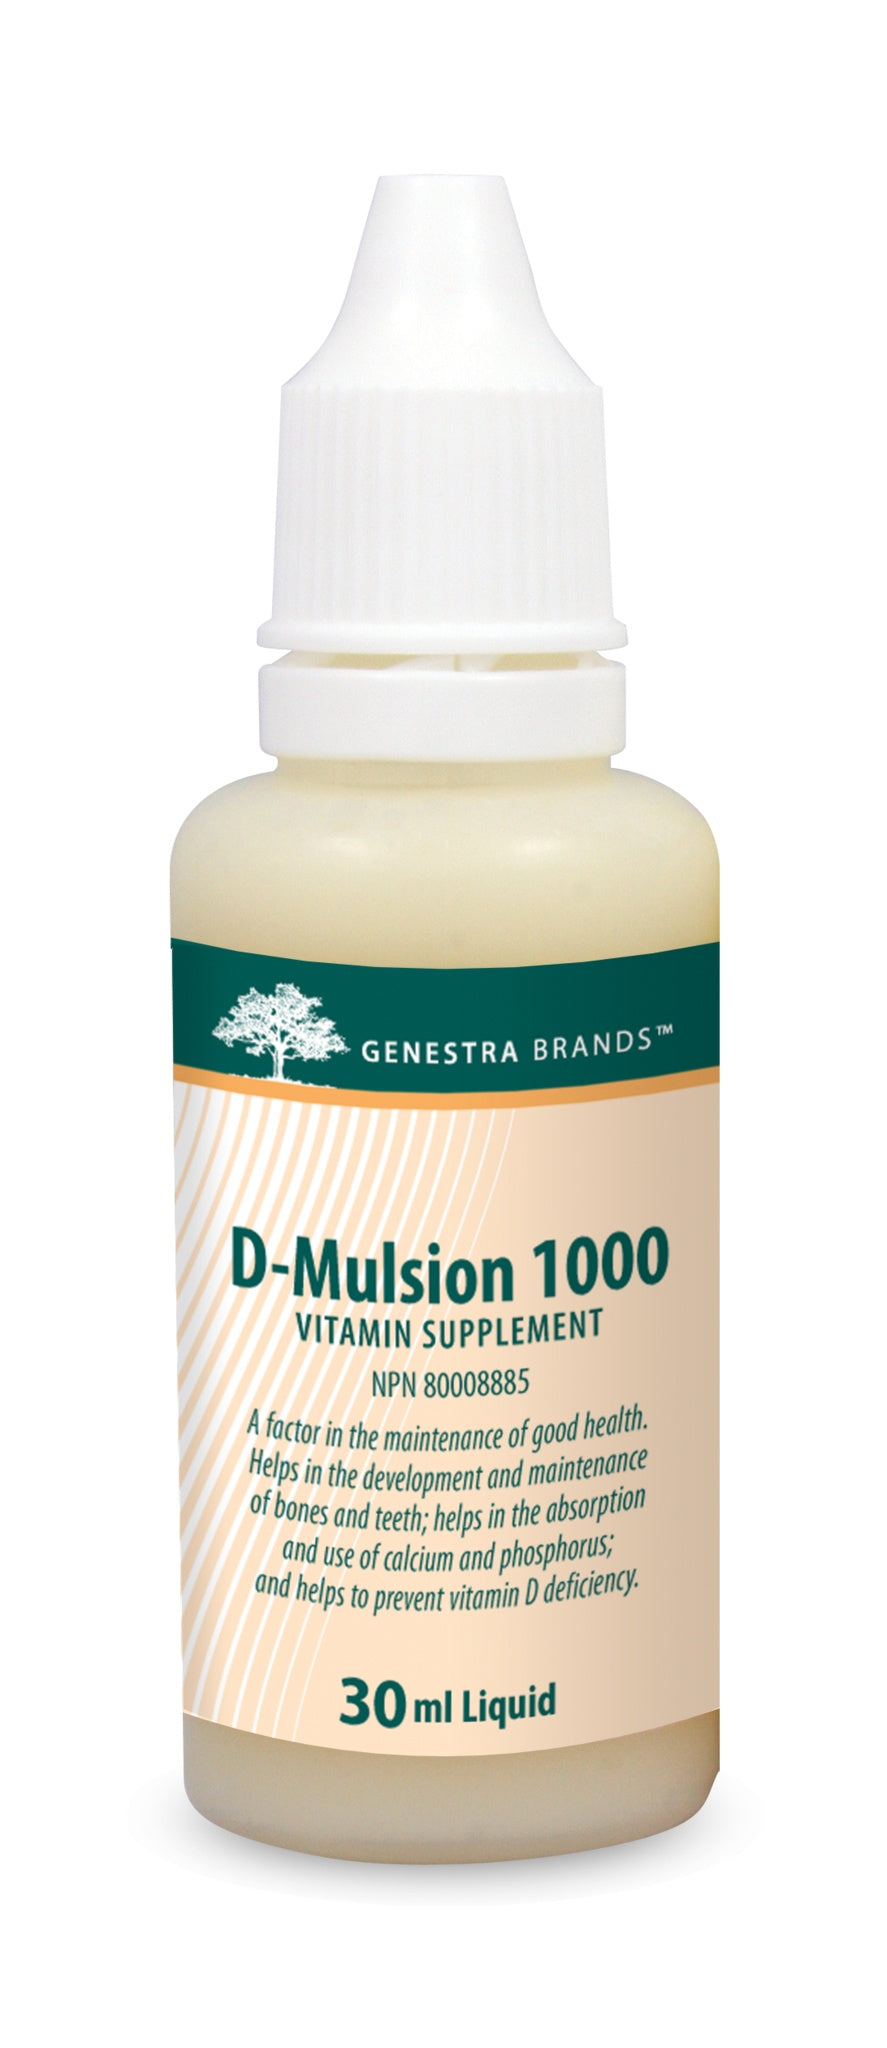 Supplements & Vitamins - Genestra - D-Mulsion 1000 Citrus, 30ml